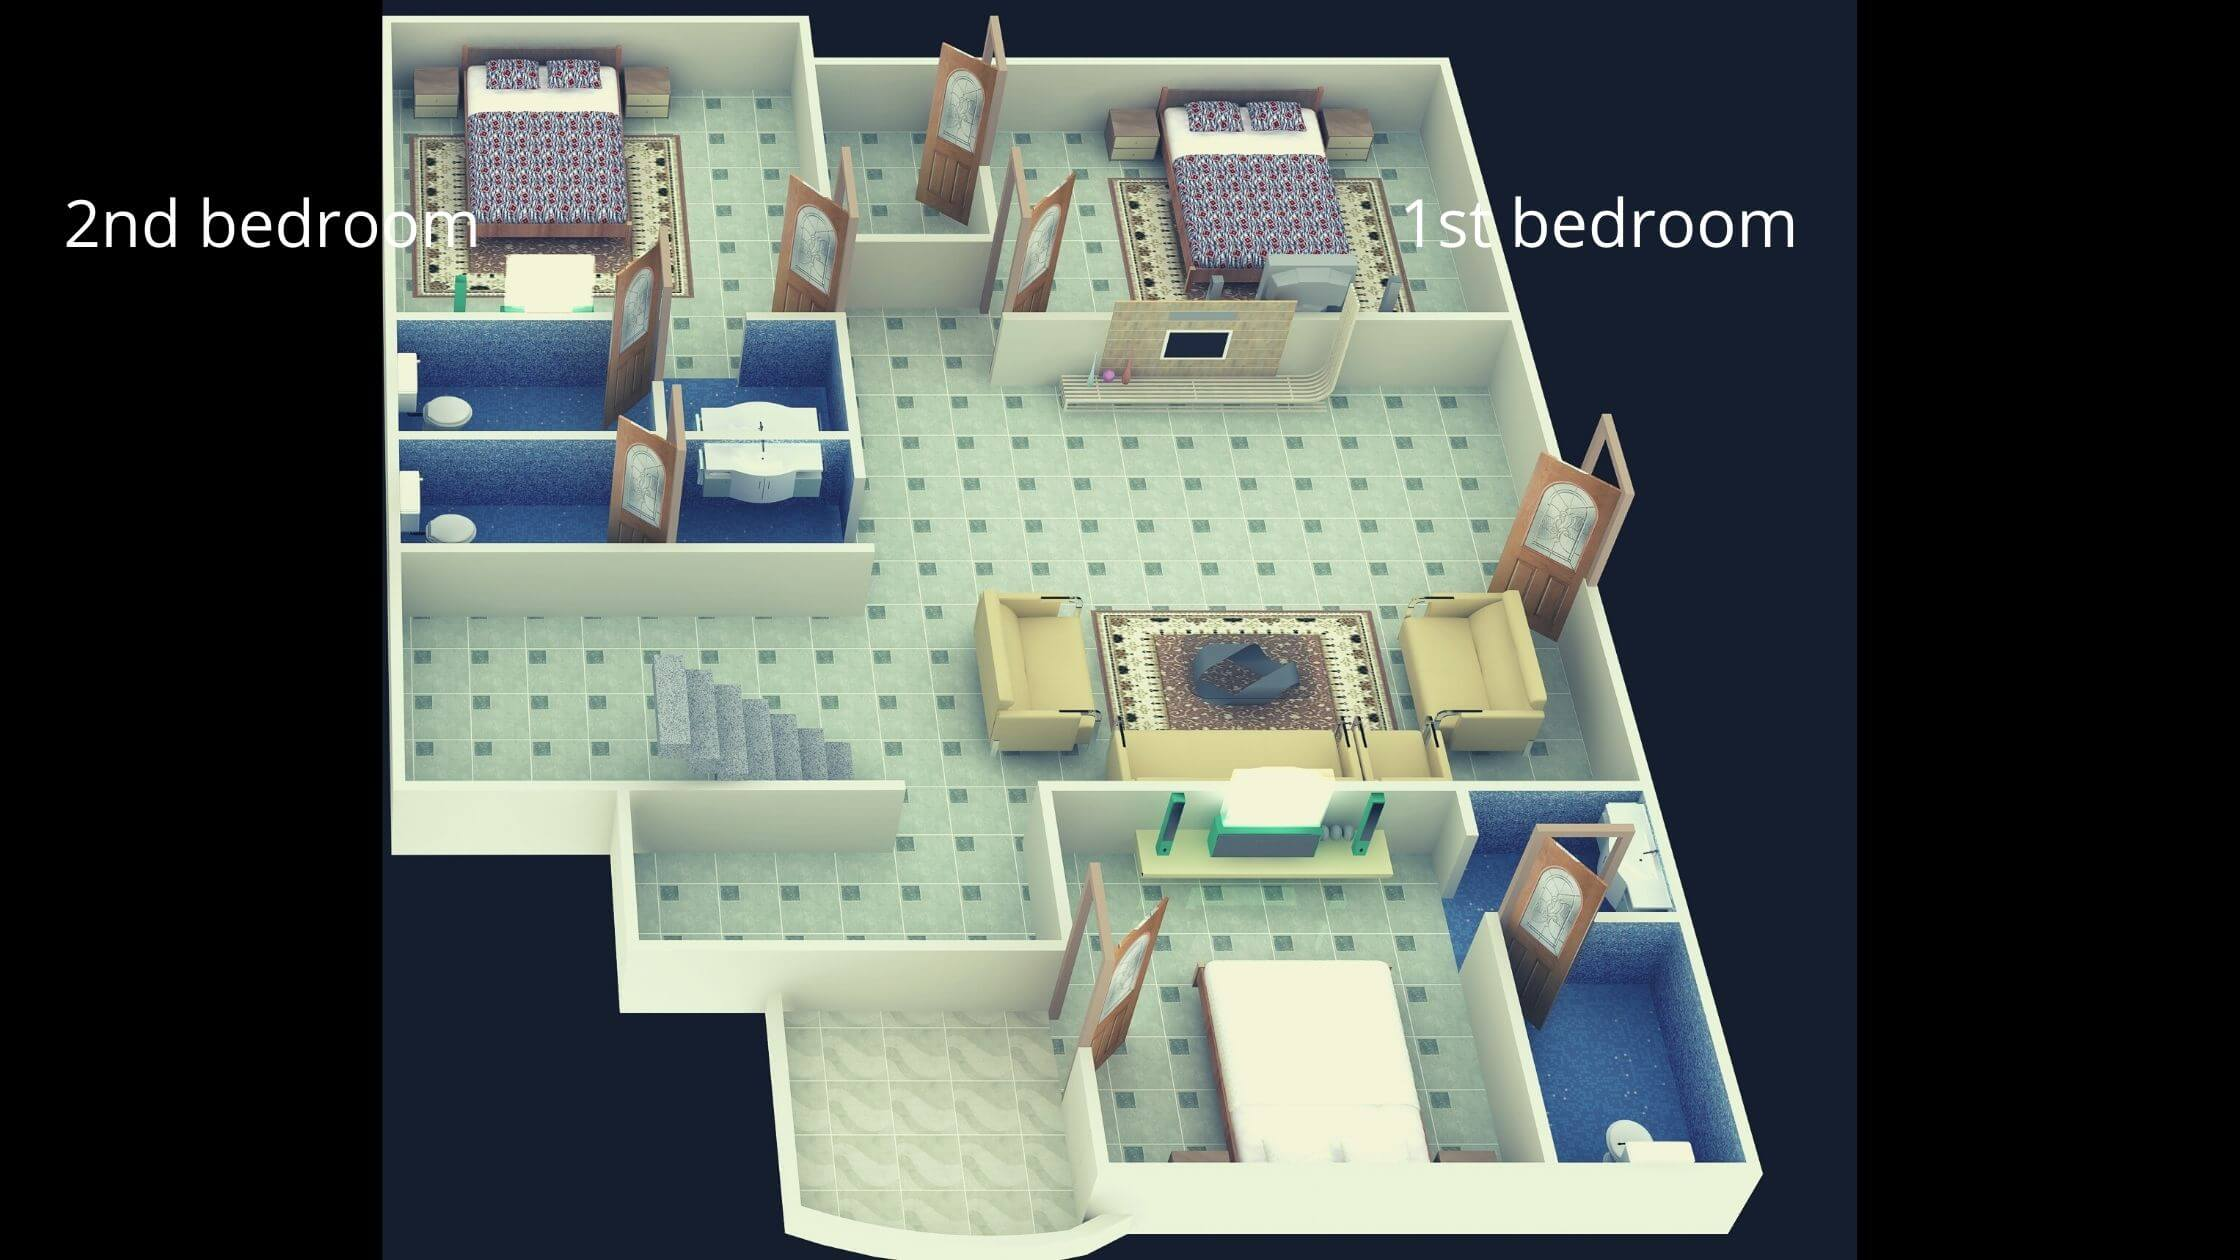 2 Bedroom House Plans Indian Style in Budget